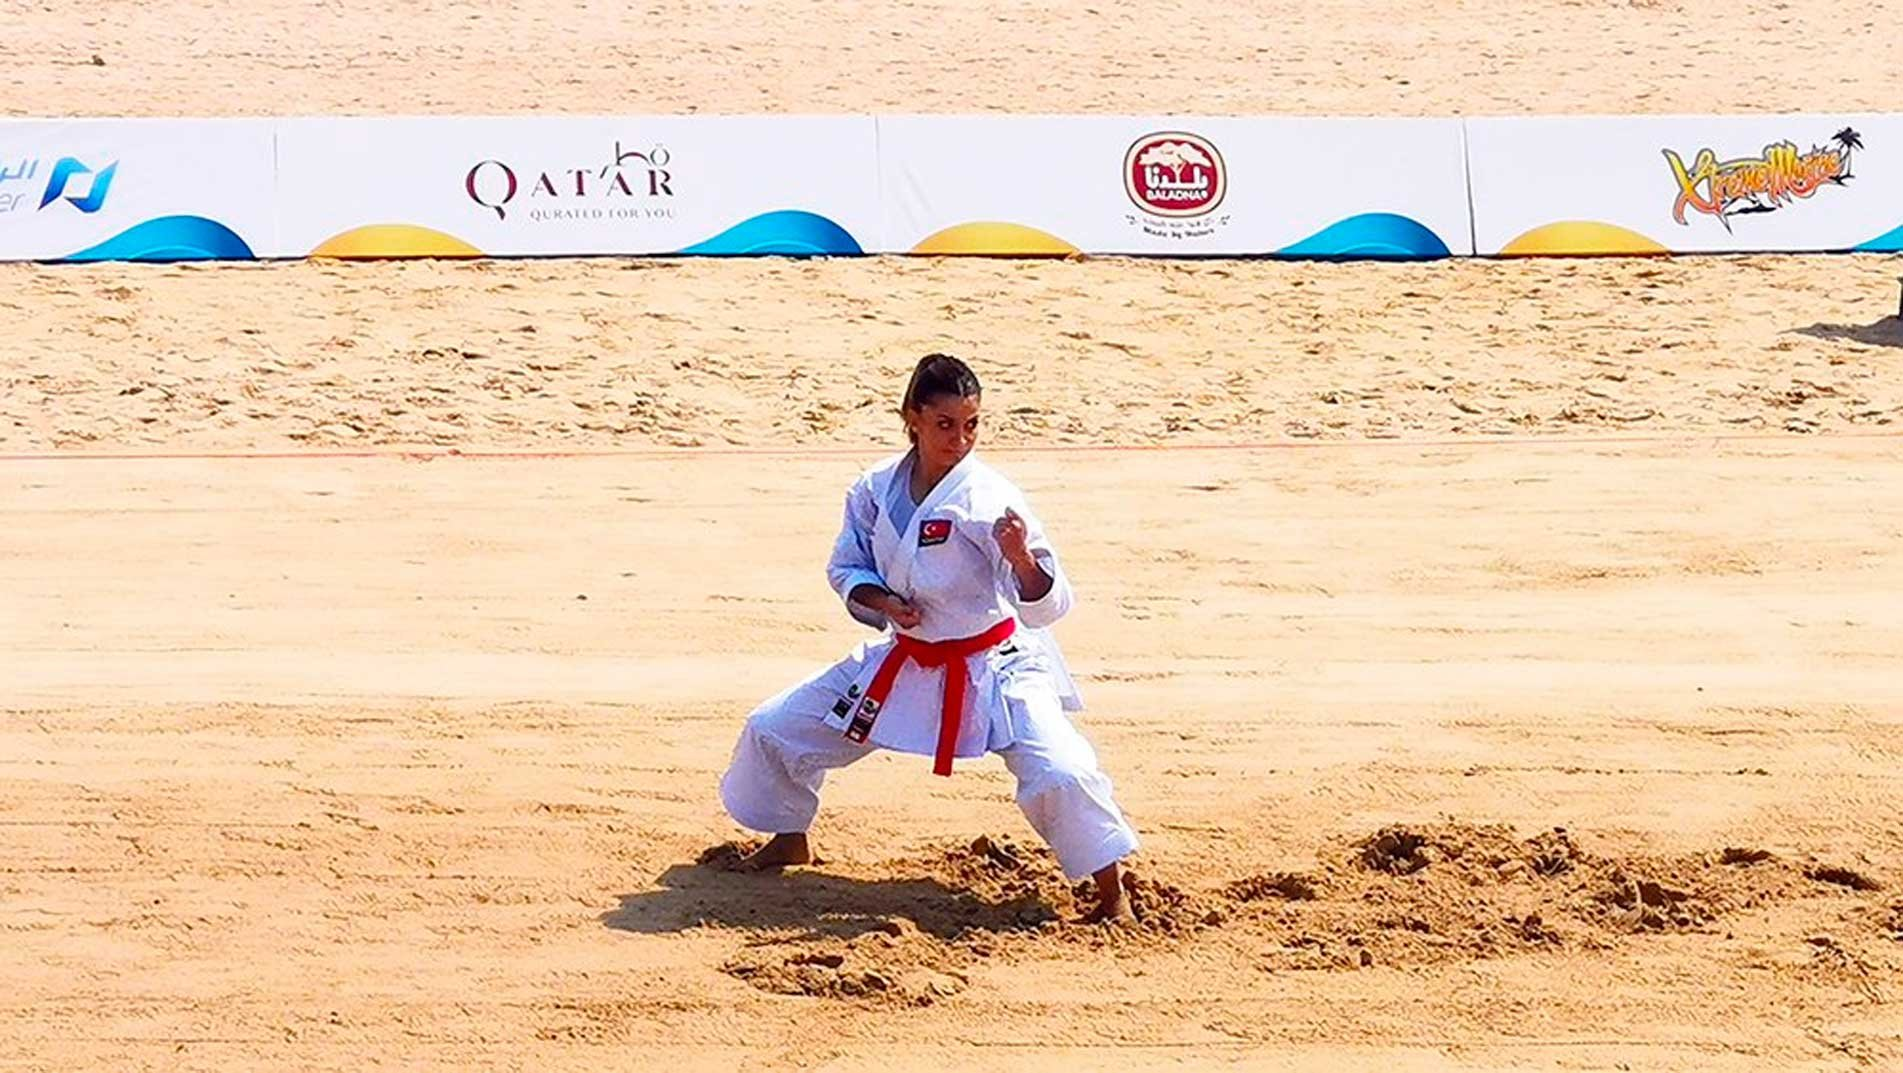 Karate heroes at ANOC World Beach Games: Great to be part of this fantastic event!